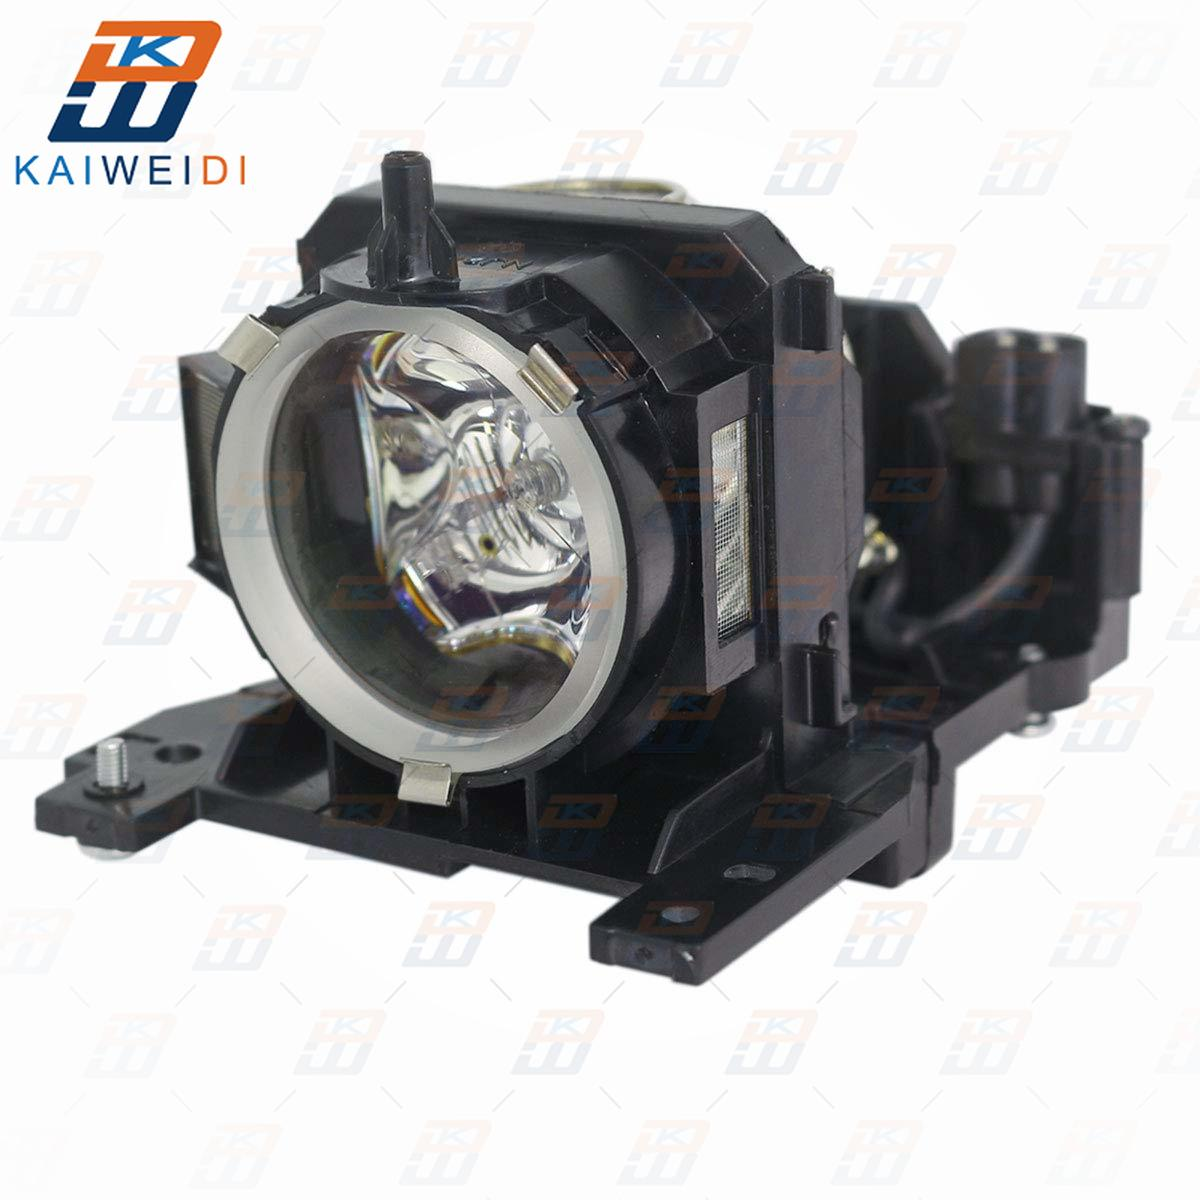 DT00841 Compatible Projector Lamp Bulb For HITACHI CP-X205 CP-X206 CP-X300 CP-X301 CP-X305 CP-X306 CP-X308 CP-X400 With Housing